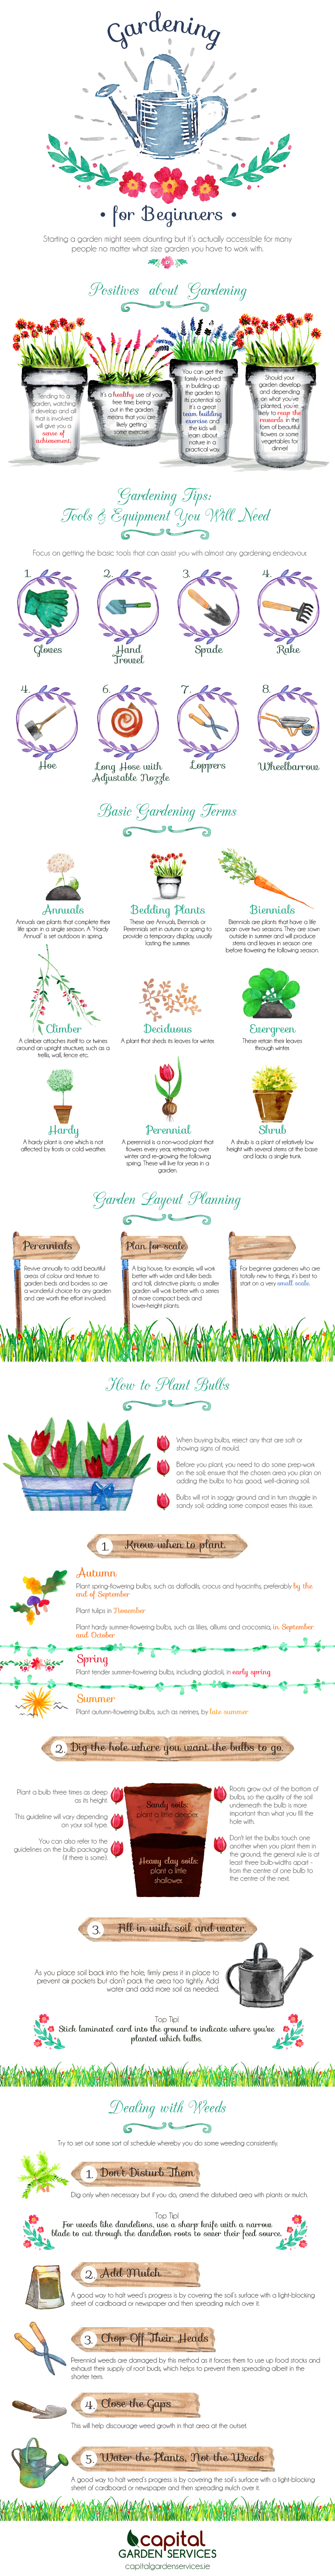 Gardening for Beginners [Infographic]